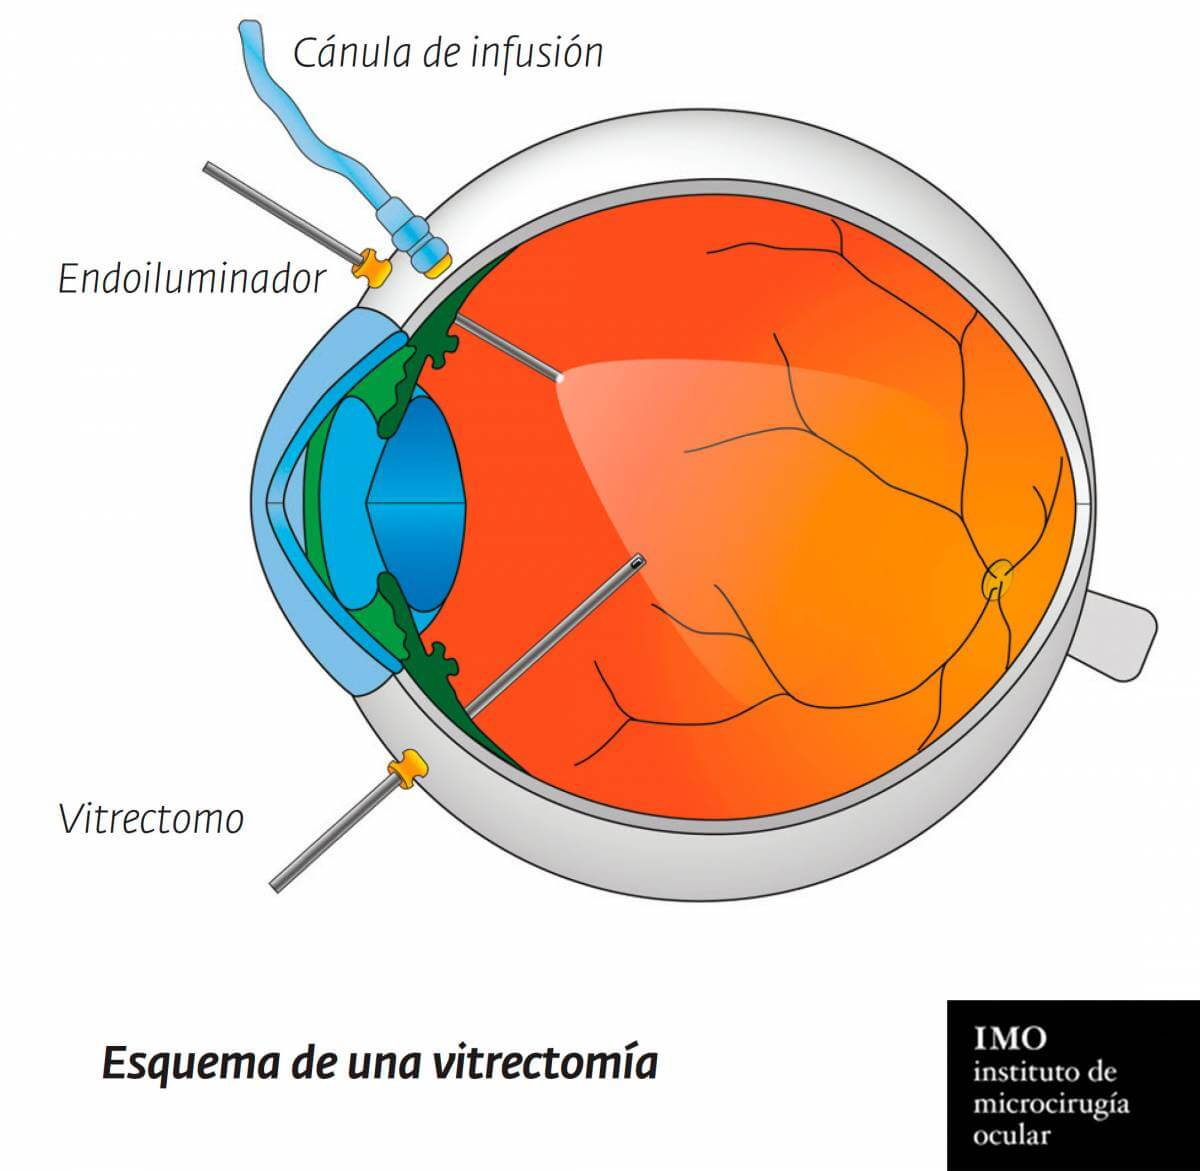 Vitrectomy structure